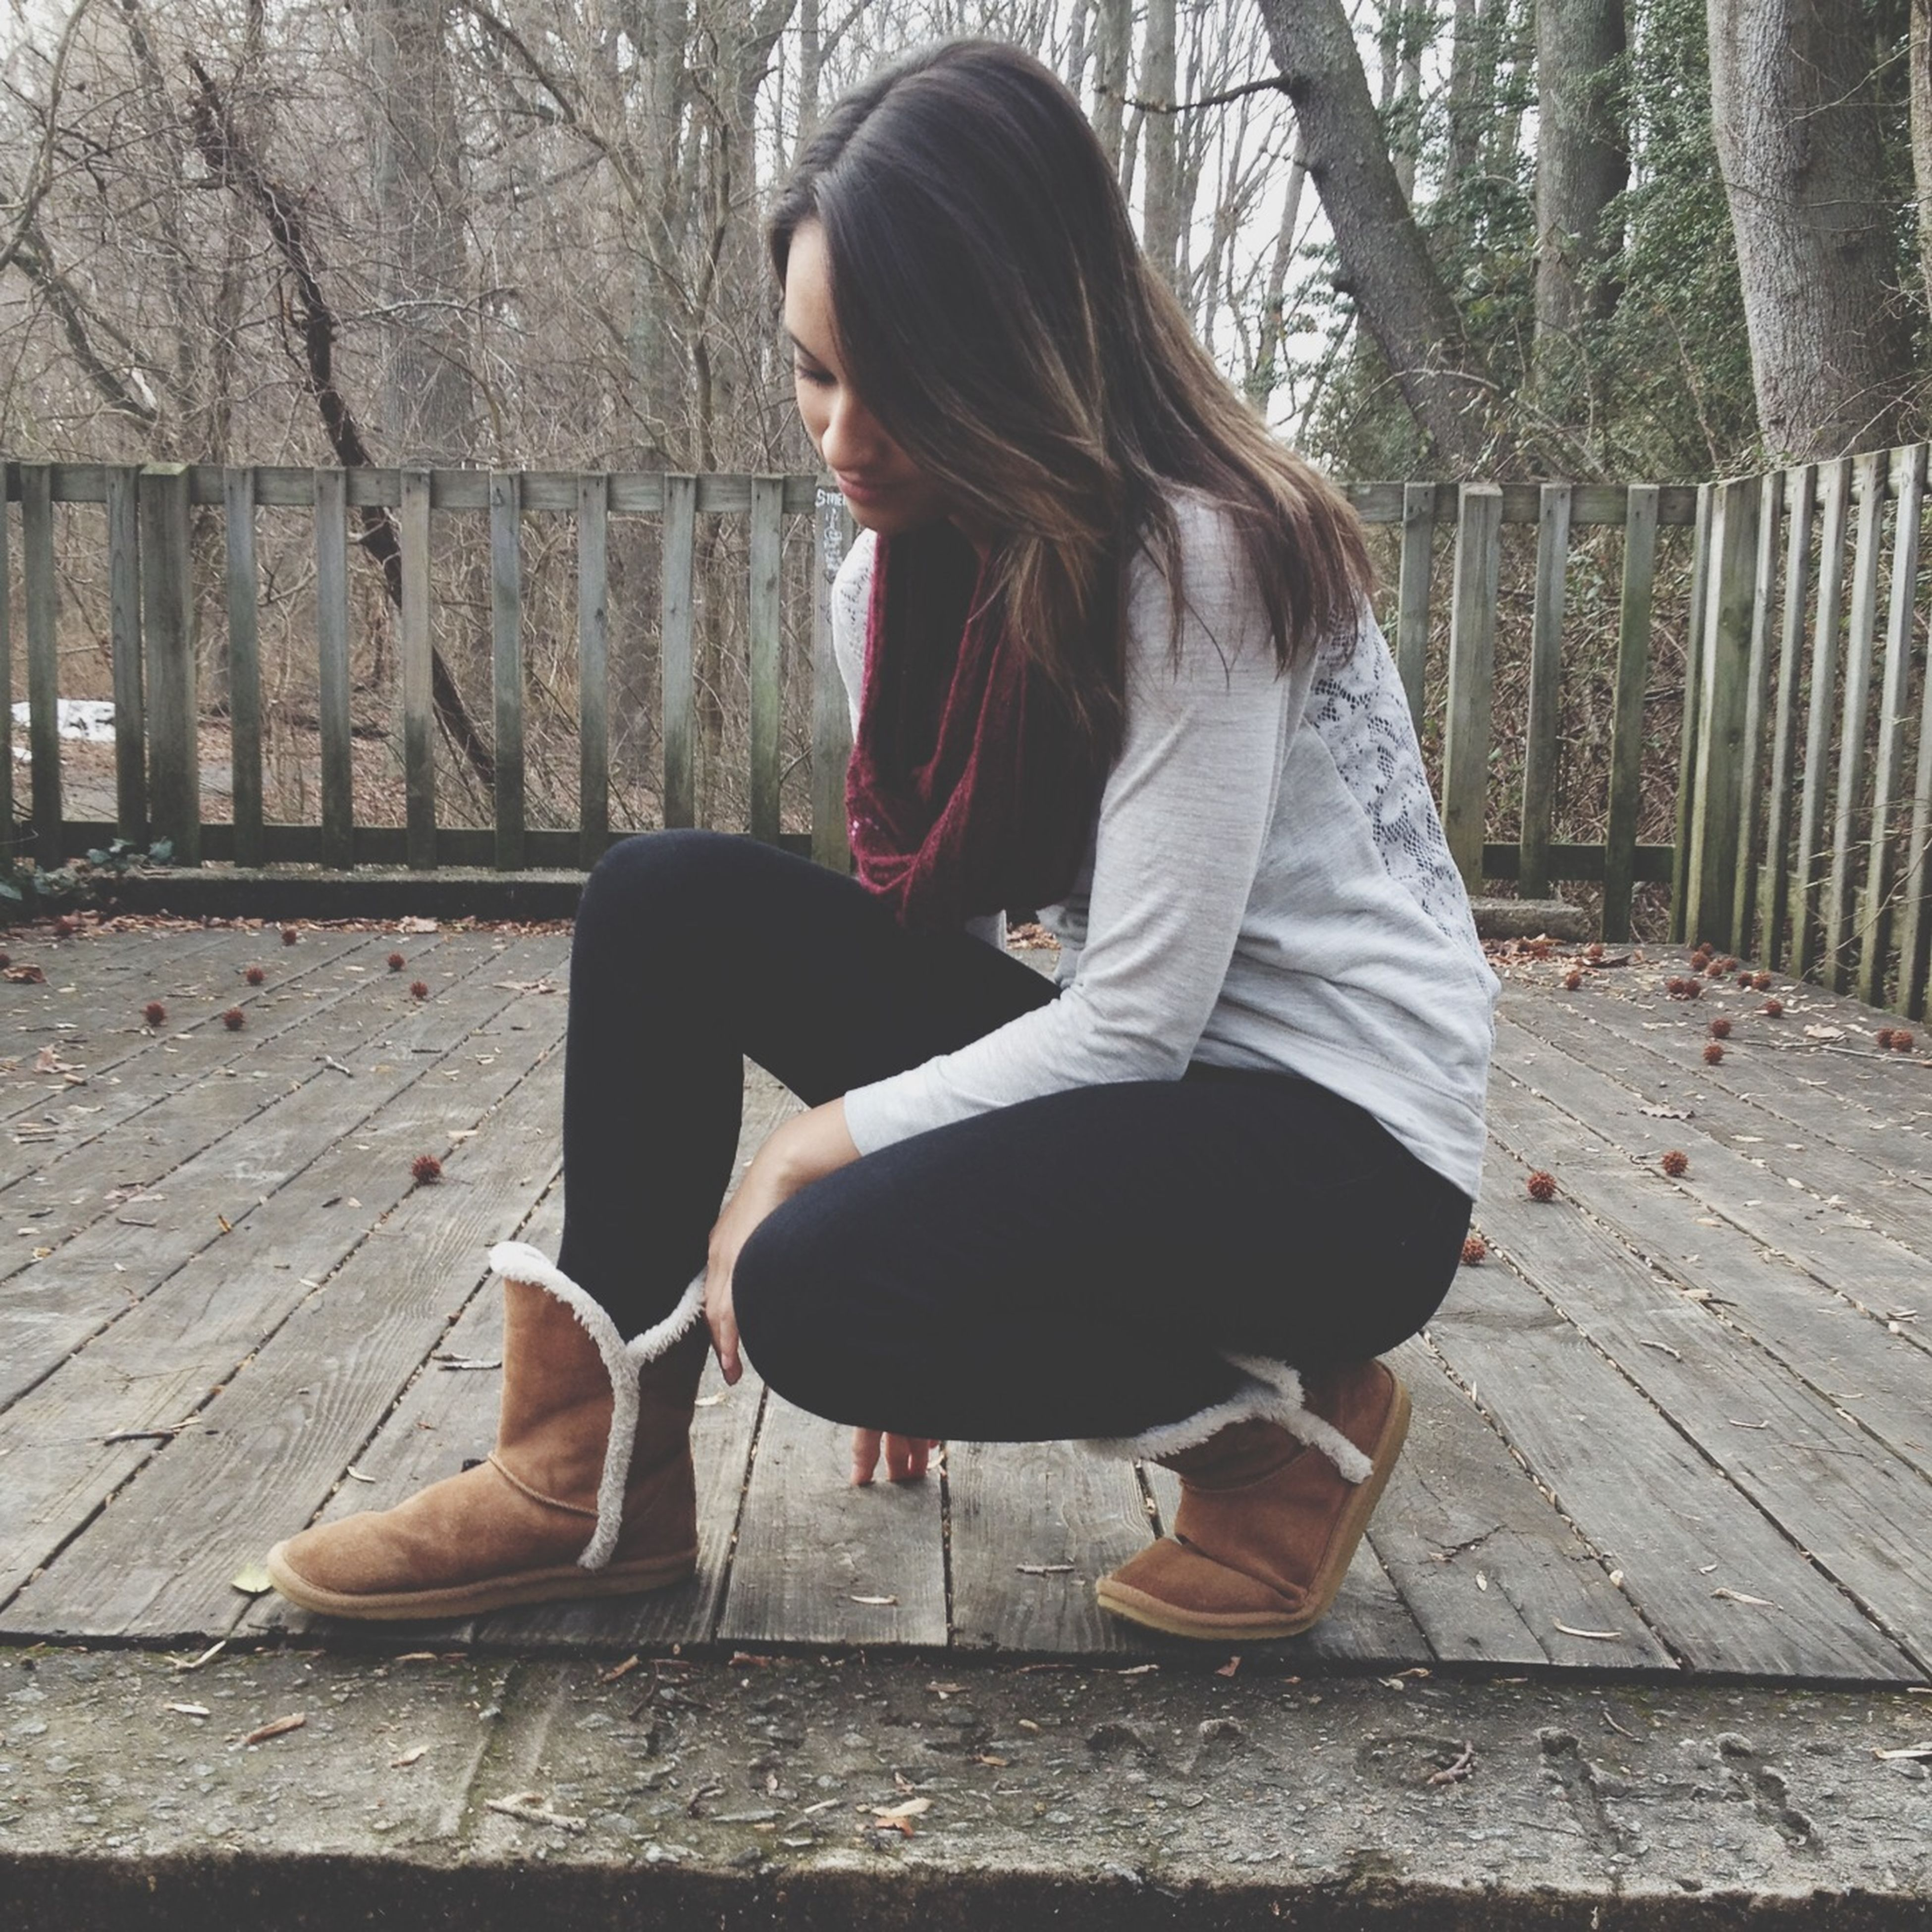 lifestyles, casual clothing, leisure activity, young adult, full length, young women, person, sitting, long hair, standing, side view, three quarter length, tree, rear view, relaxation, day, jacket, outdoors